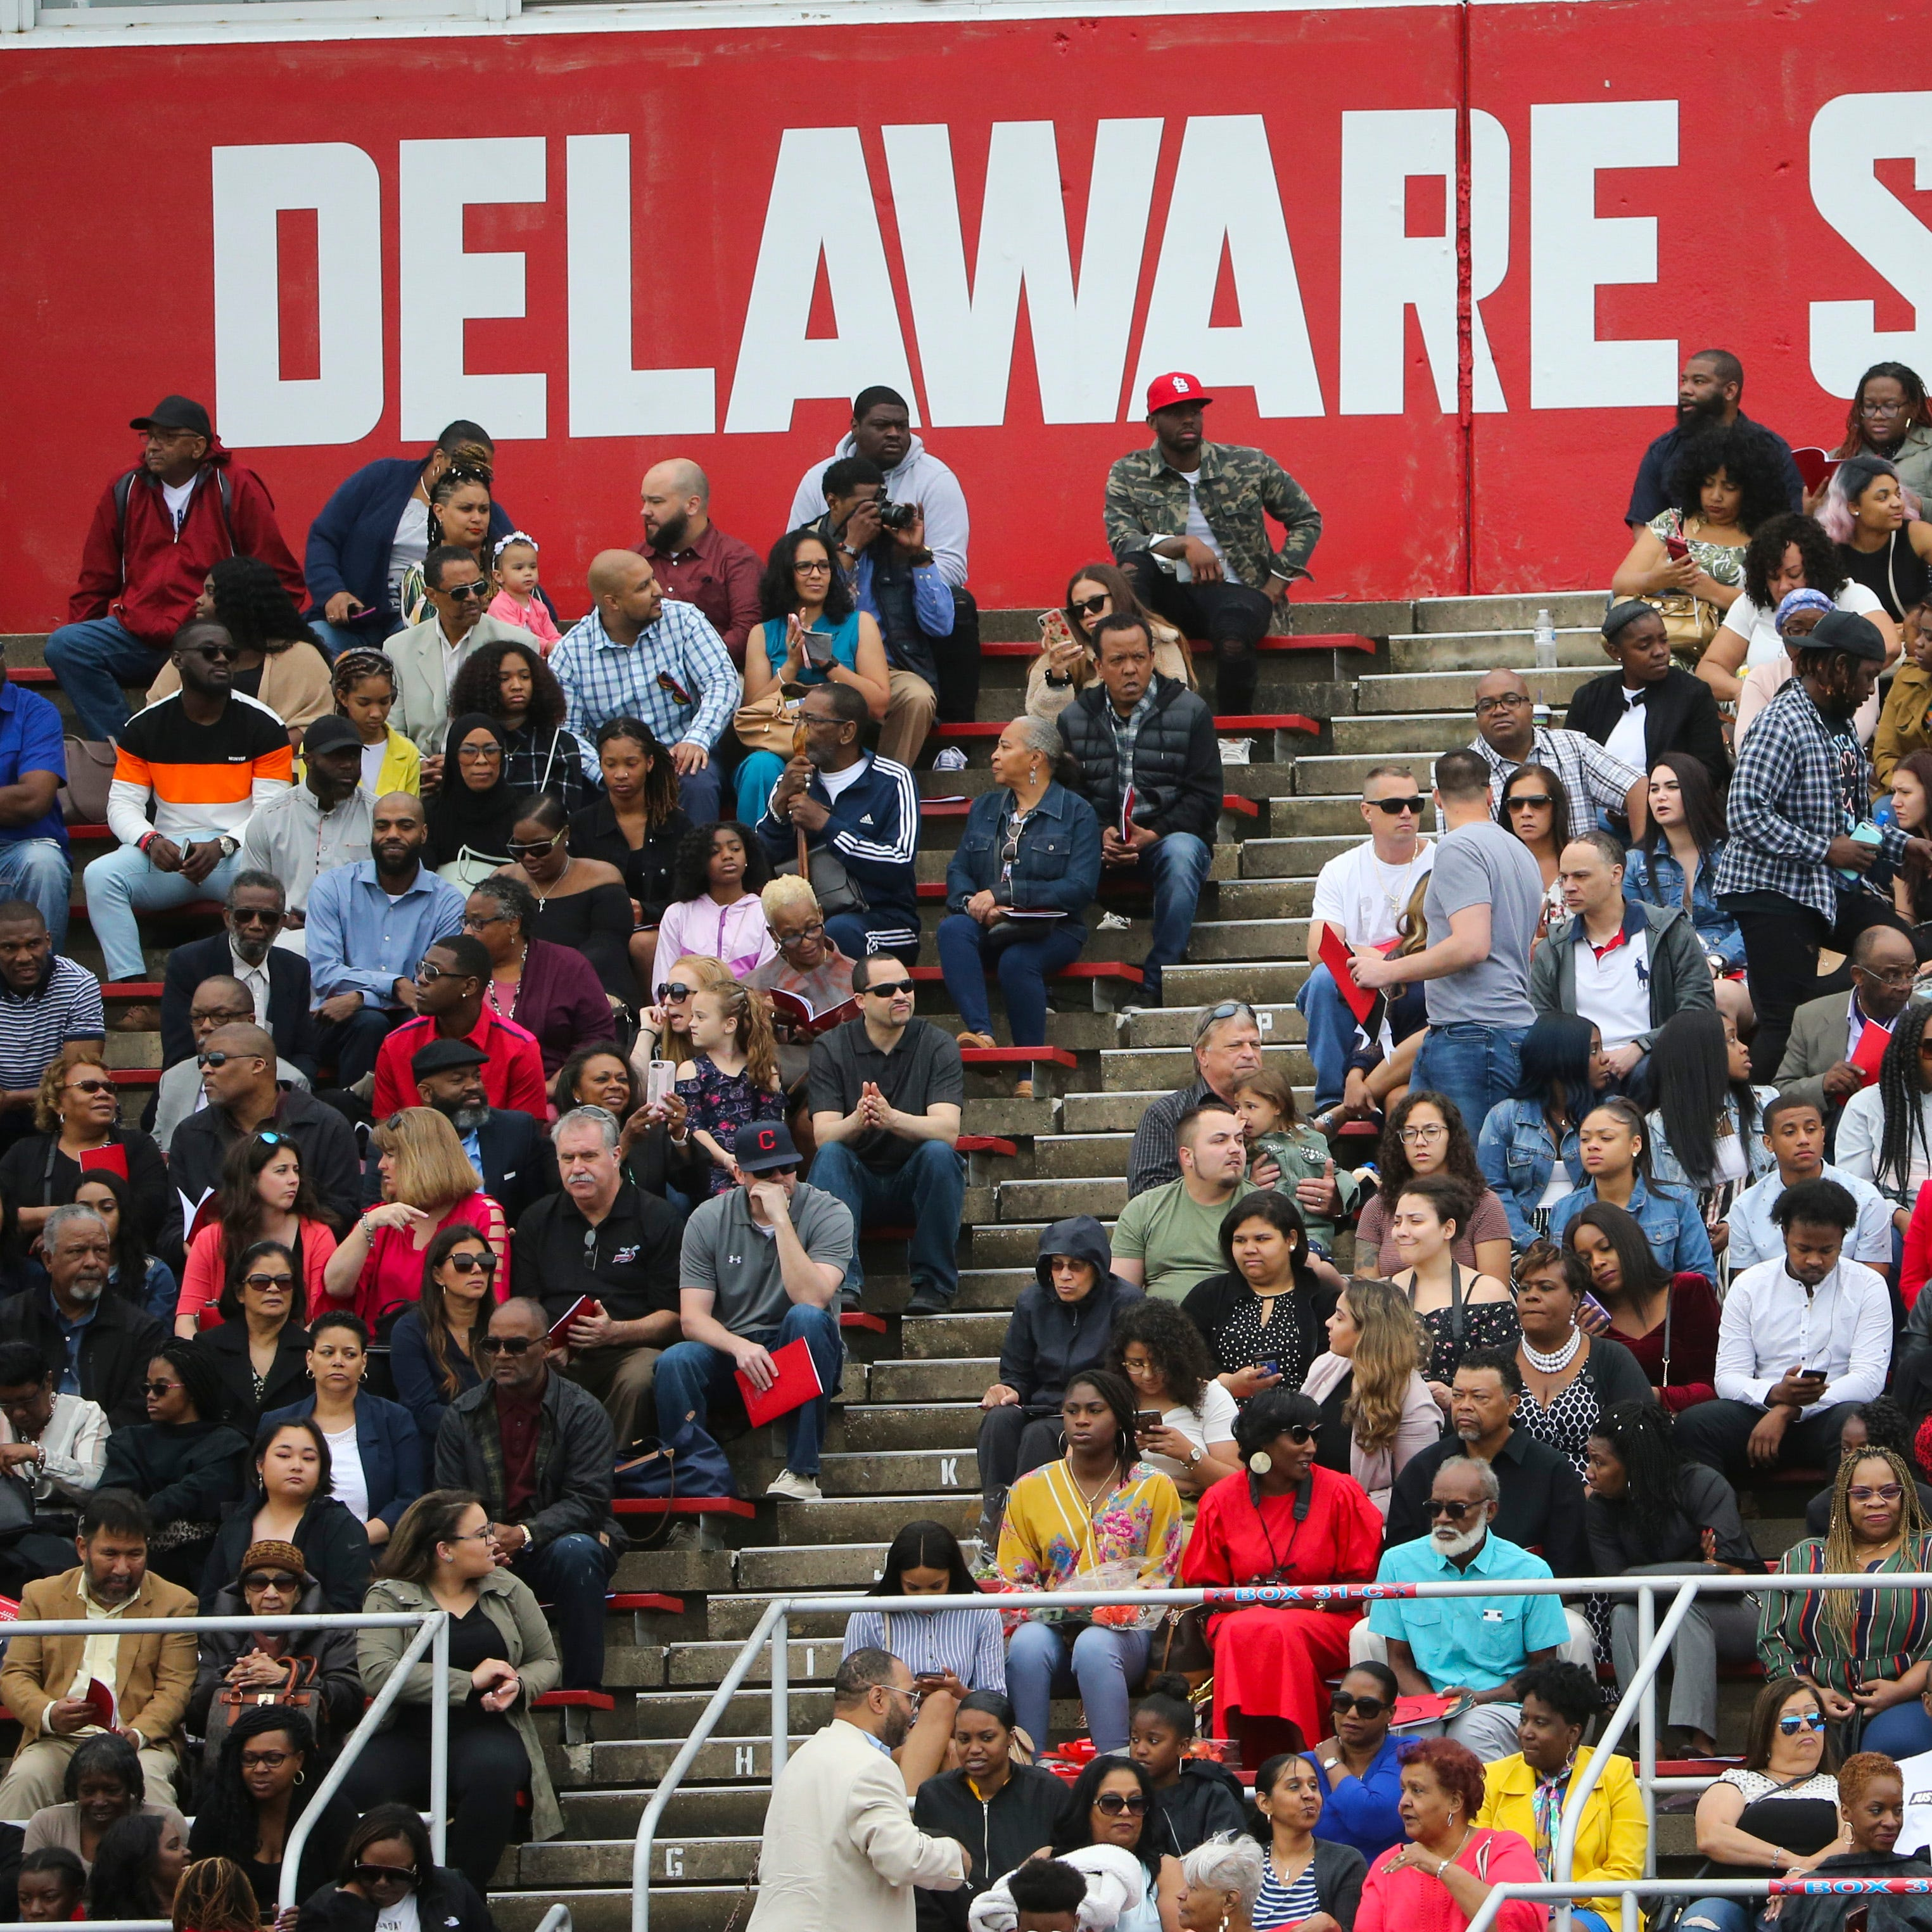 Delaware State alum pleads guilty as 'leader' of tuition break bribery scheme